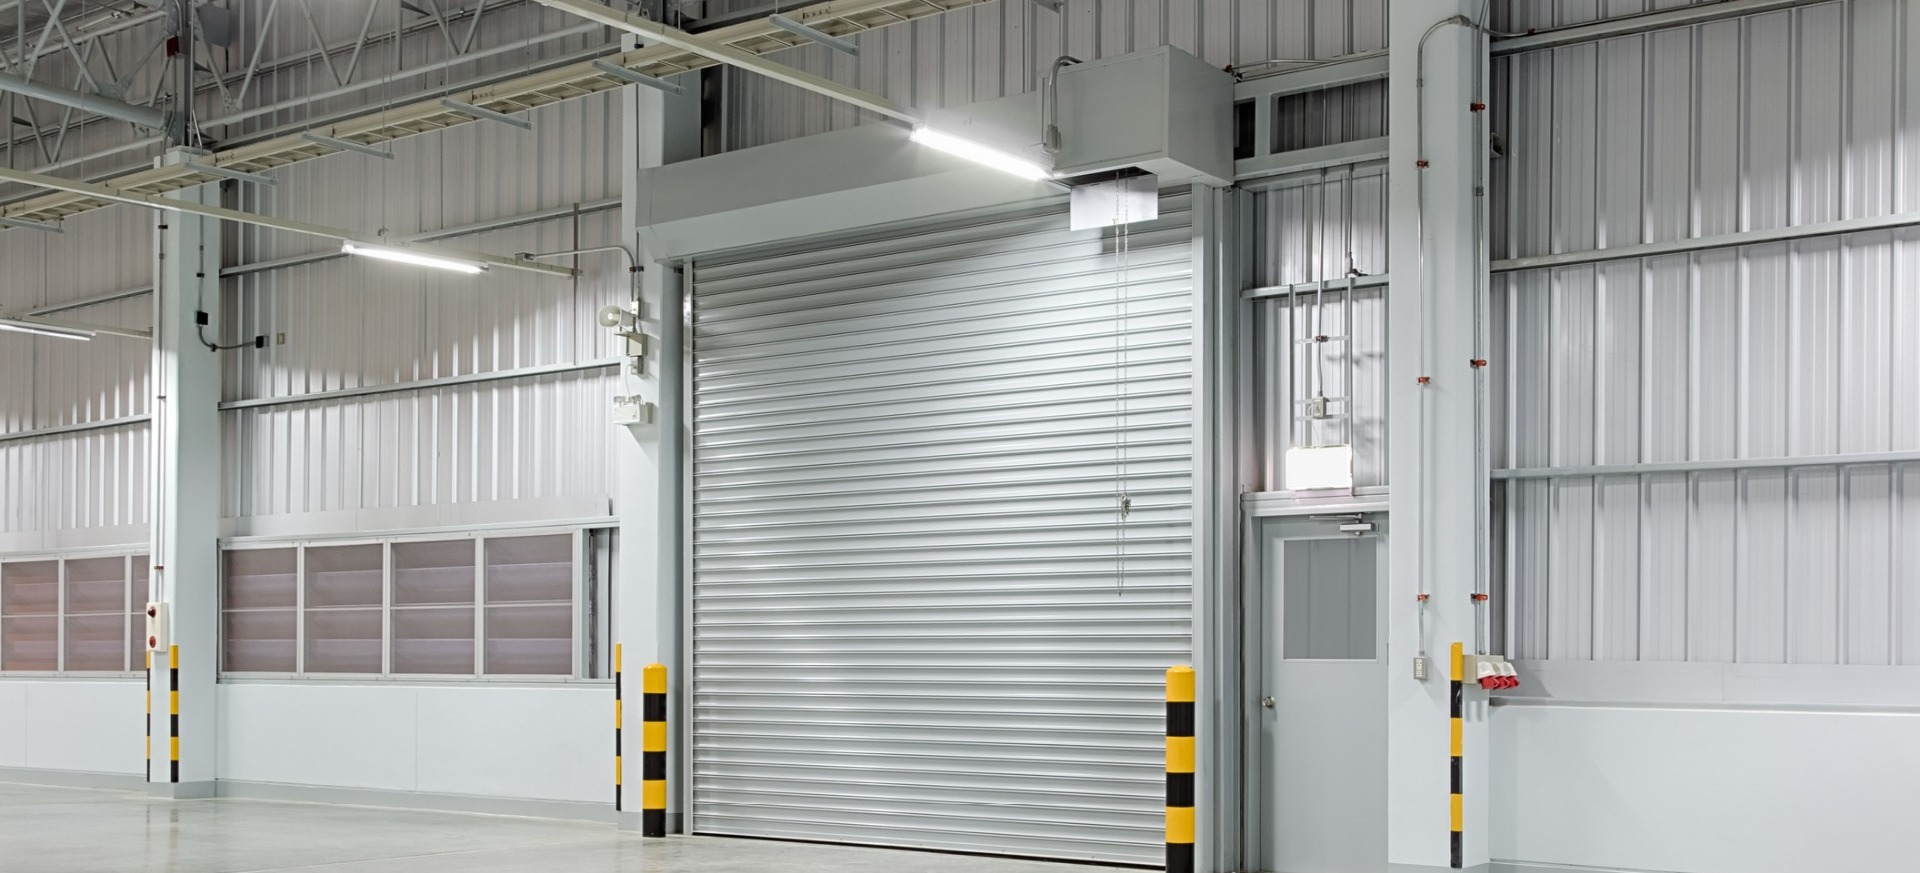 Large metal roller shutter door on inside of clean and clear warehouse with yellow and back striped bollards